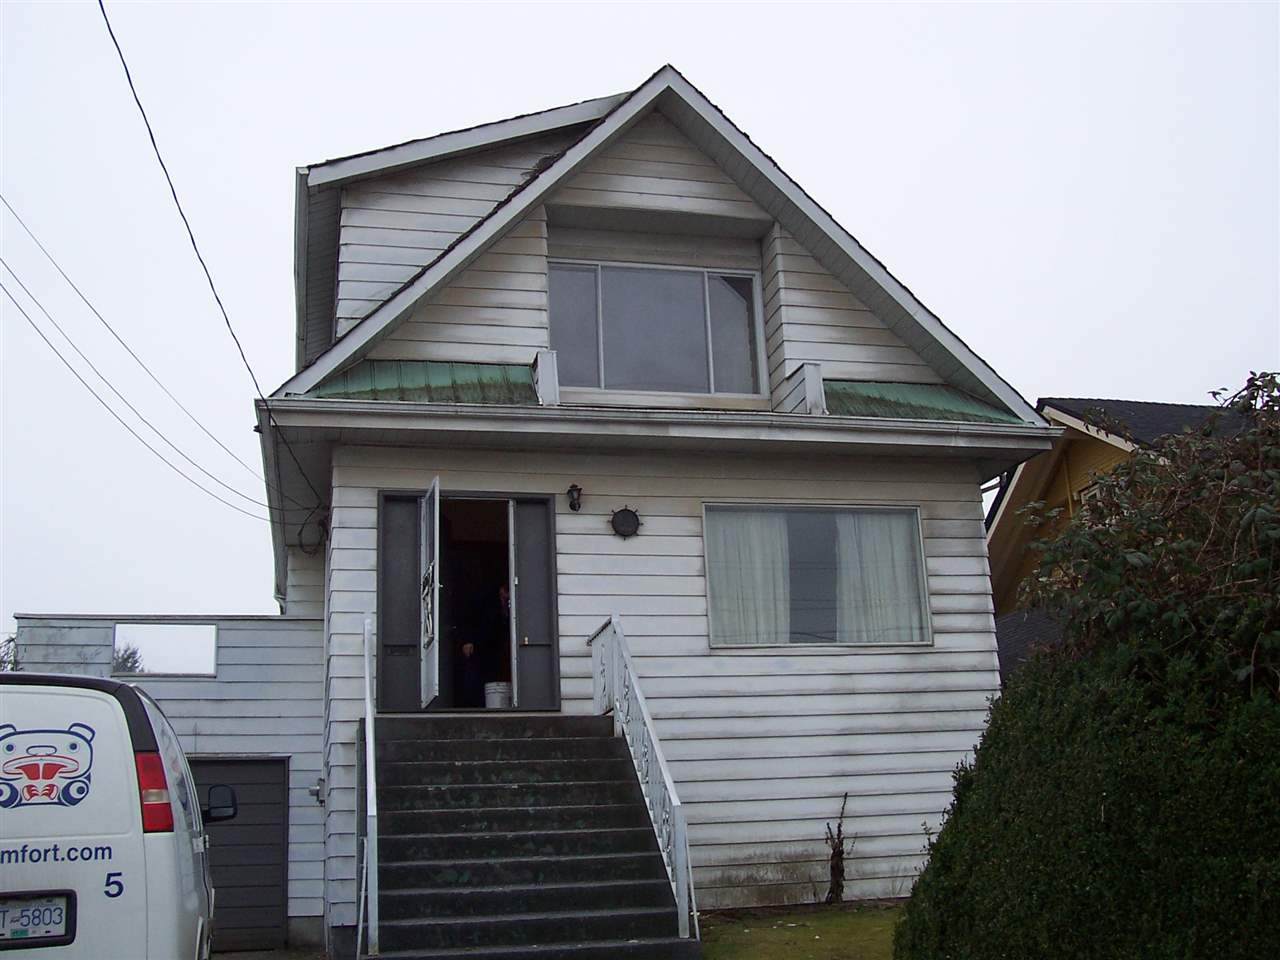 Main Photo: 1696 E 15TH Avenue in Vancouver: Victoria VE House for sale (Vancouver East)  : MLS® # R2206246